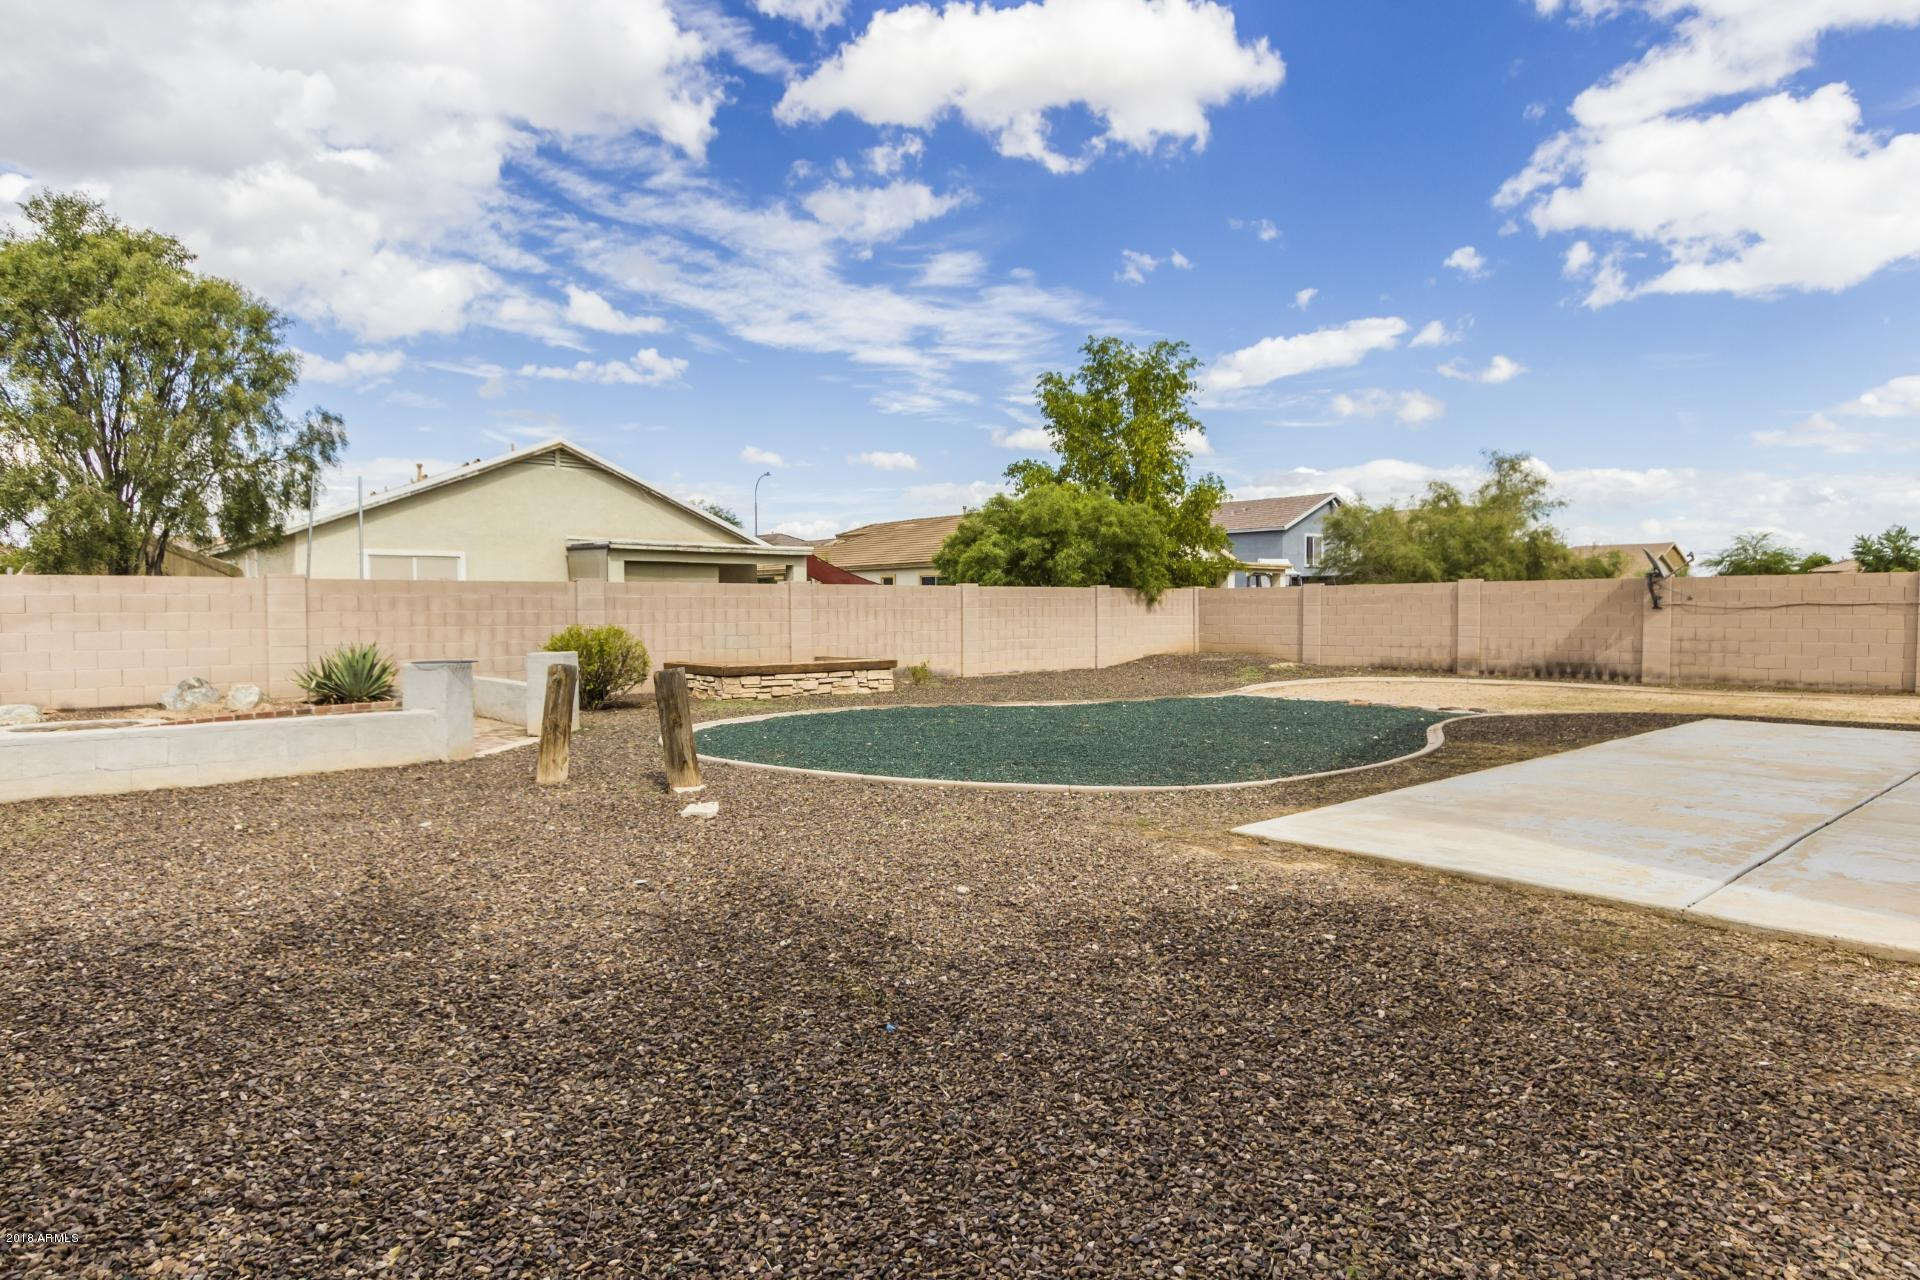 MLS 5832632 12006 W HOPI Street, Avondale, AZ 85323 Avondale AZ Cambridge Estates